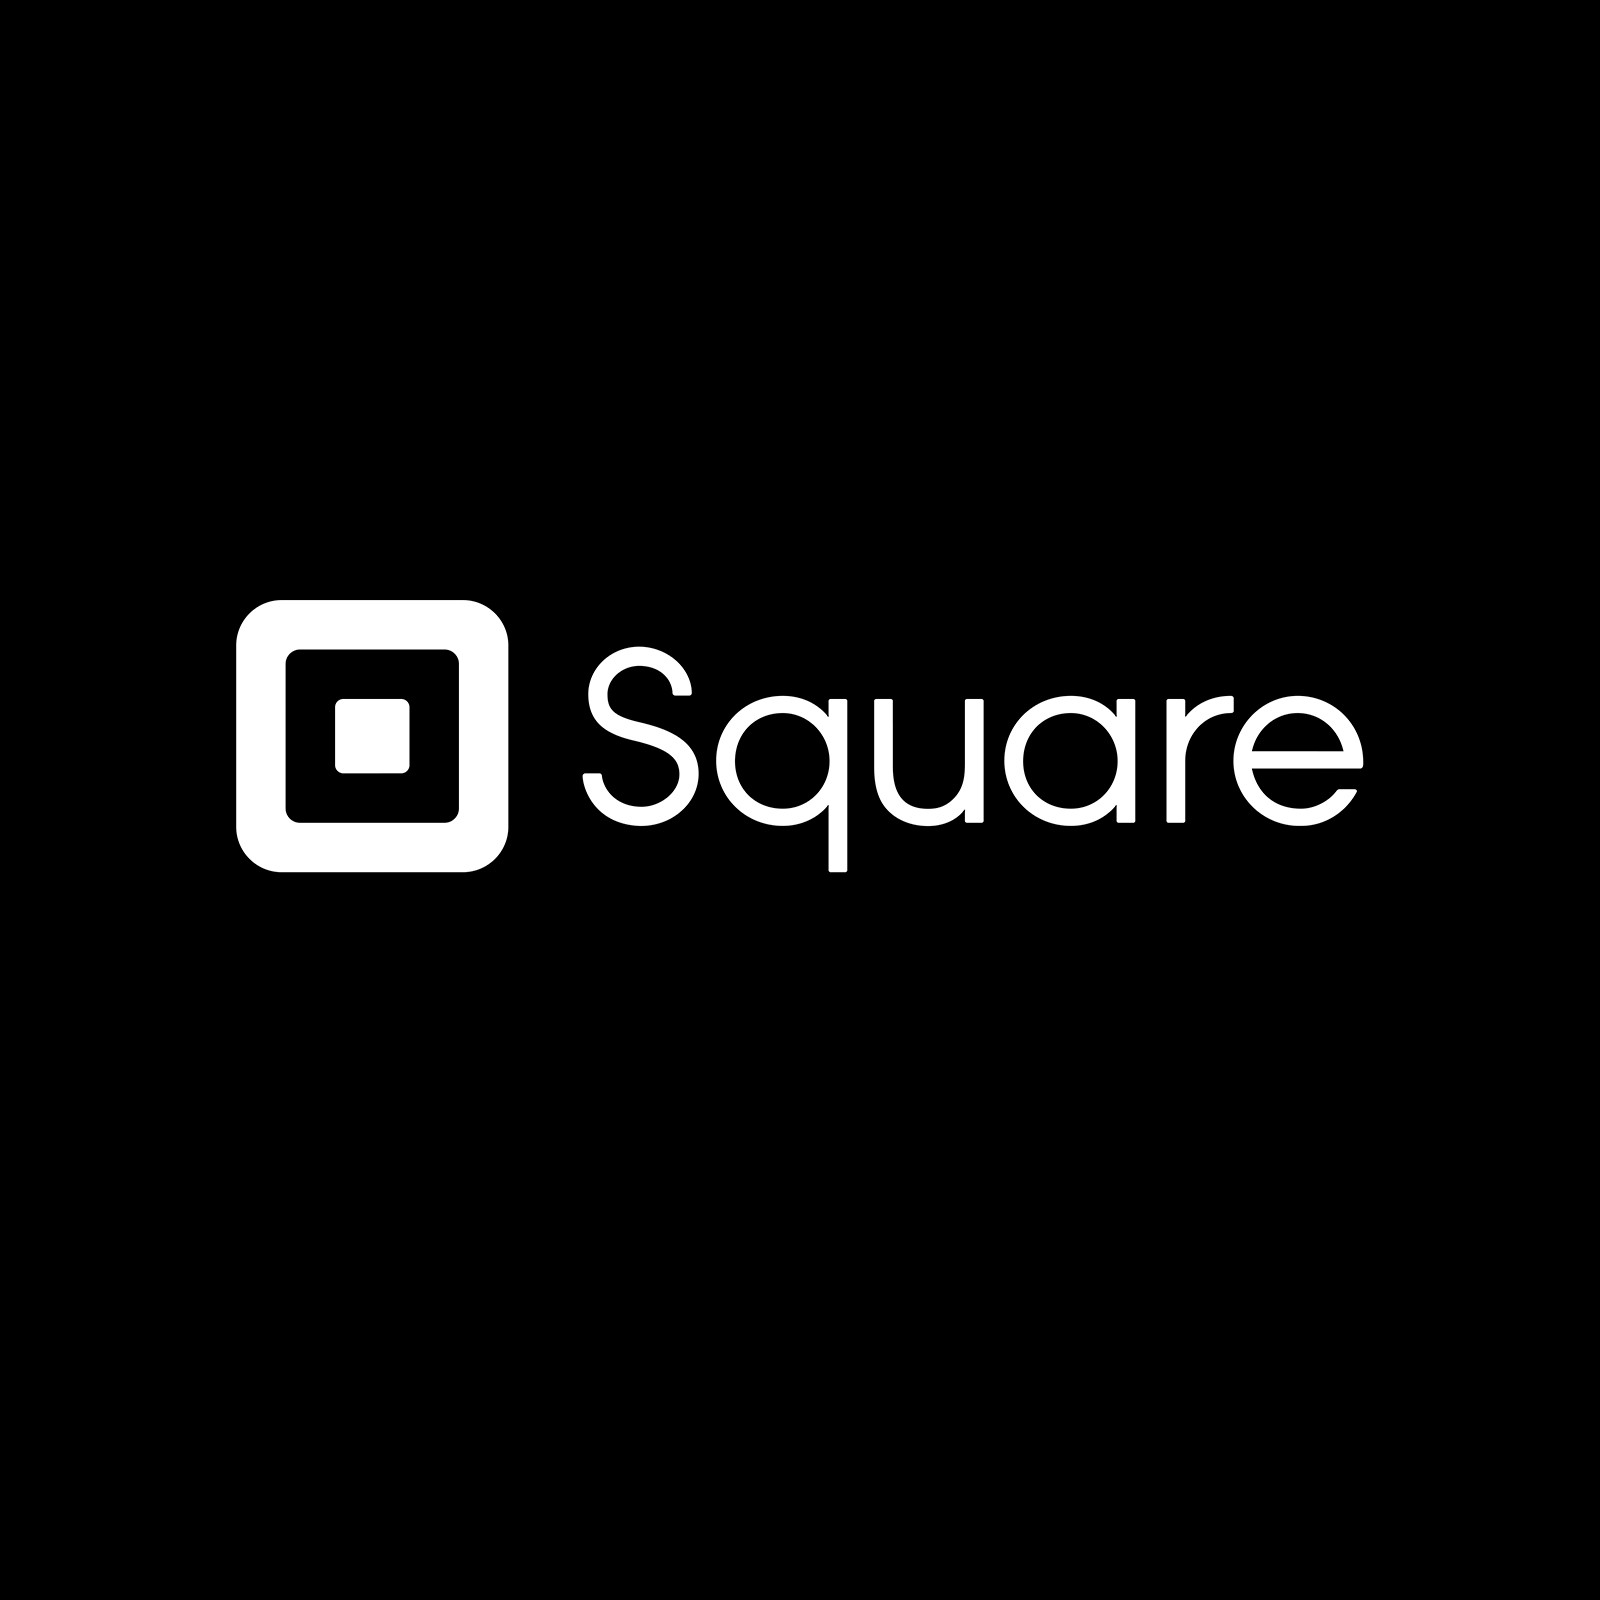 Square investeert $50 miljoen in Bitcoin